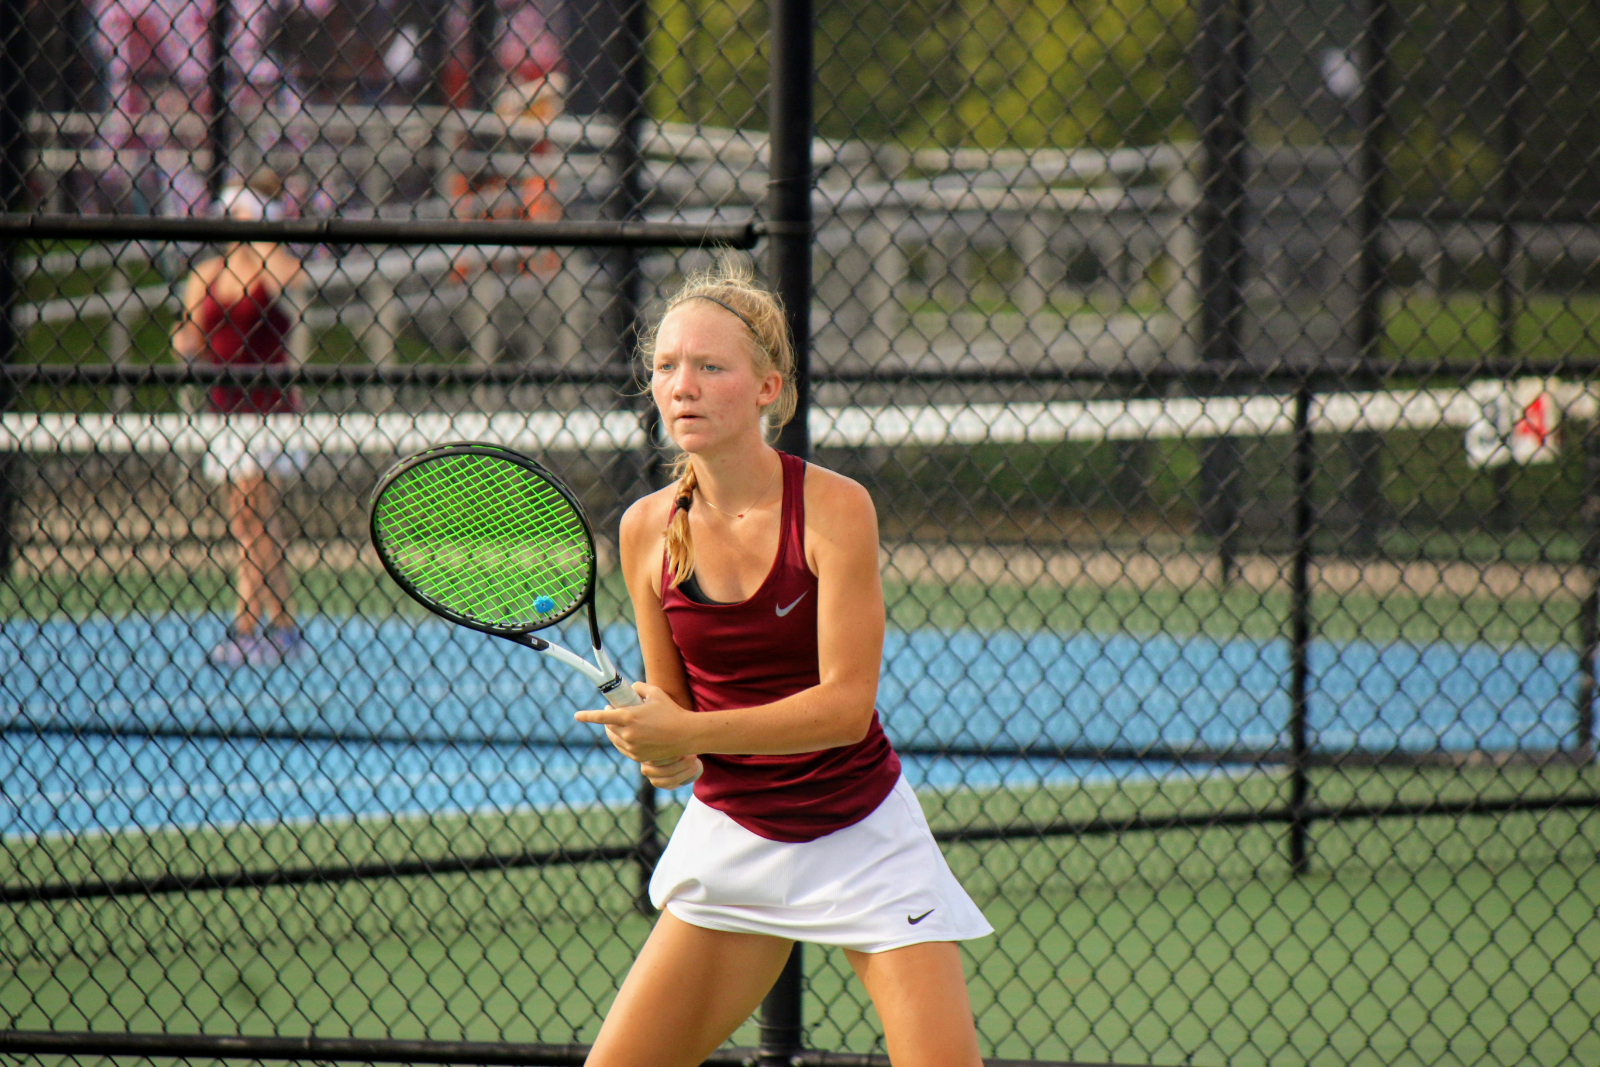 Varsity Girls Tennis vs Olentangy Liberty 9/10/2020